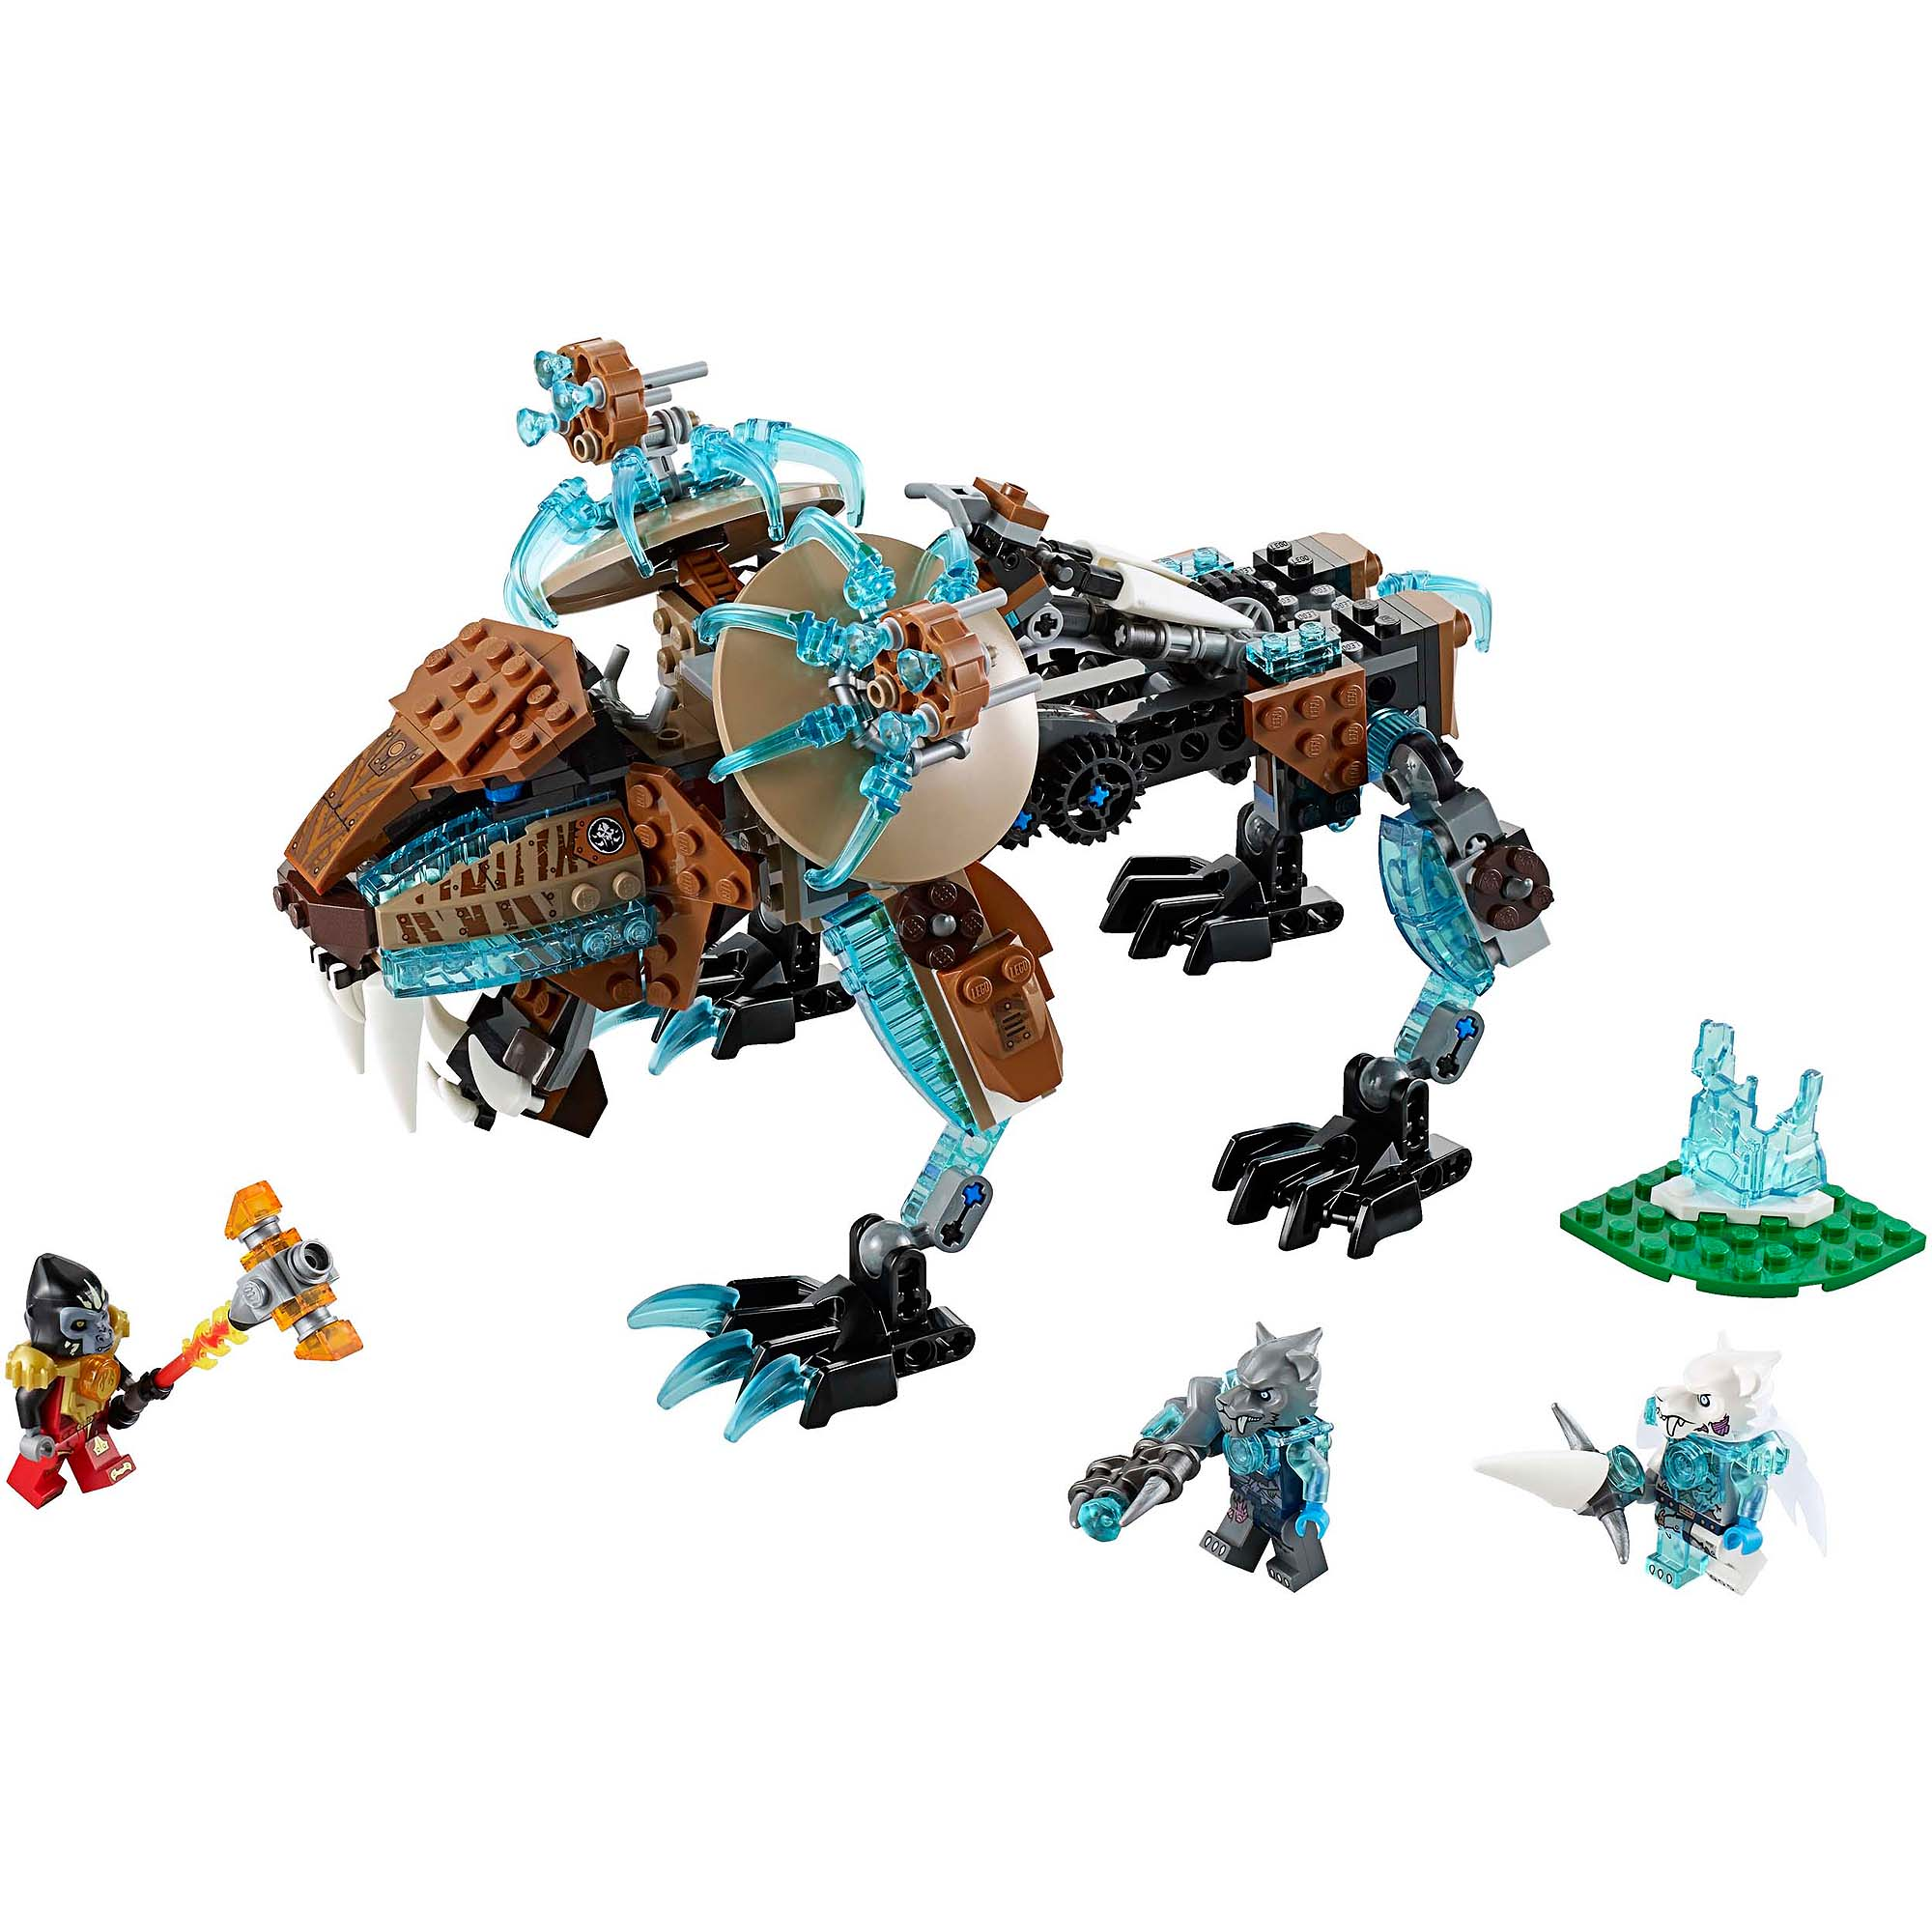 LEGO Chima Sir Fangar's Saber-Tooth Walker